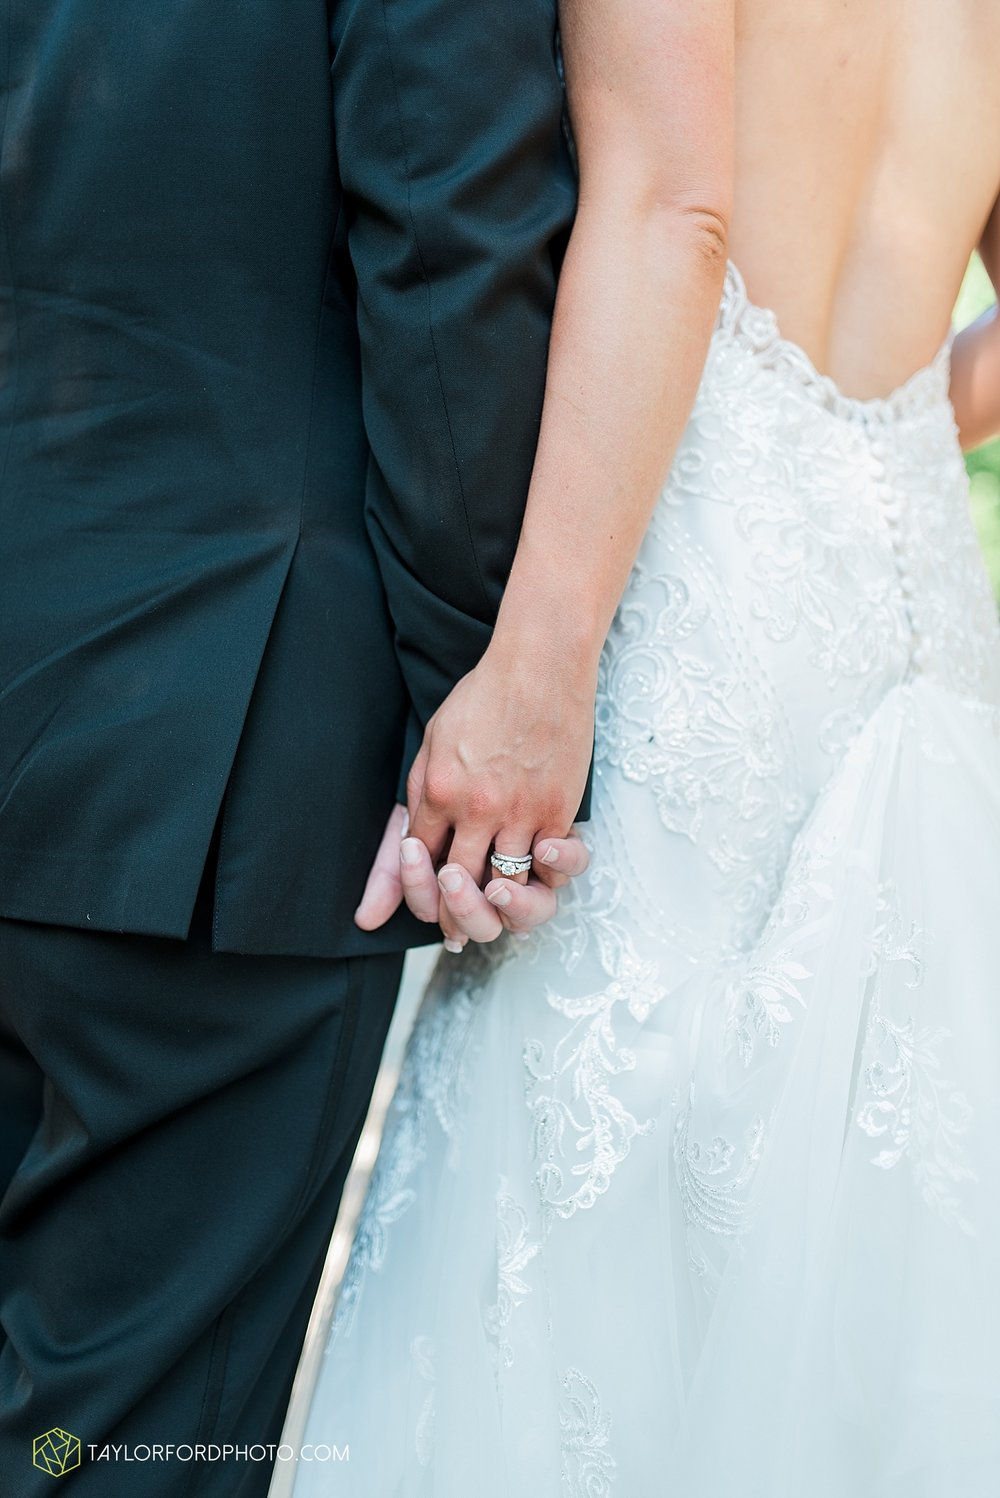 terre-haute-indiana-wedding-photographer-taylor-ford-photography-saint-marys-of-the-woods-college-weddings_2930.jpg